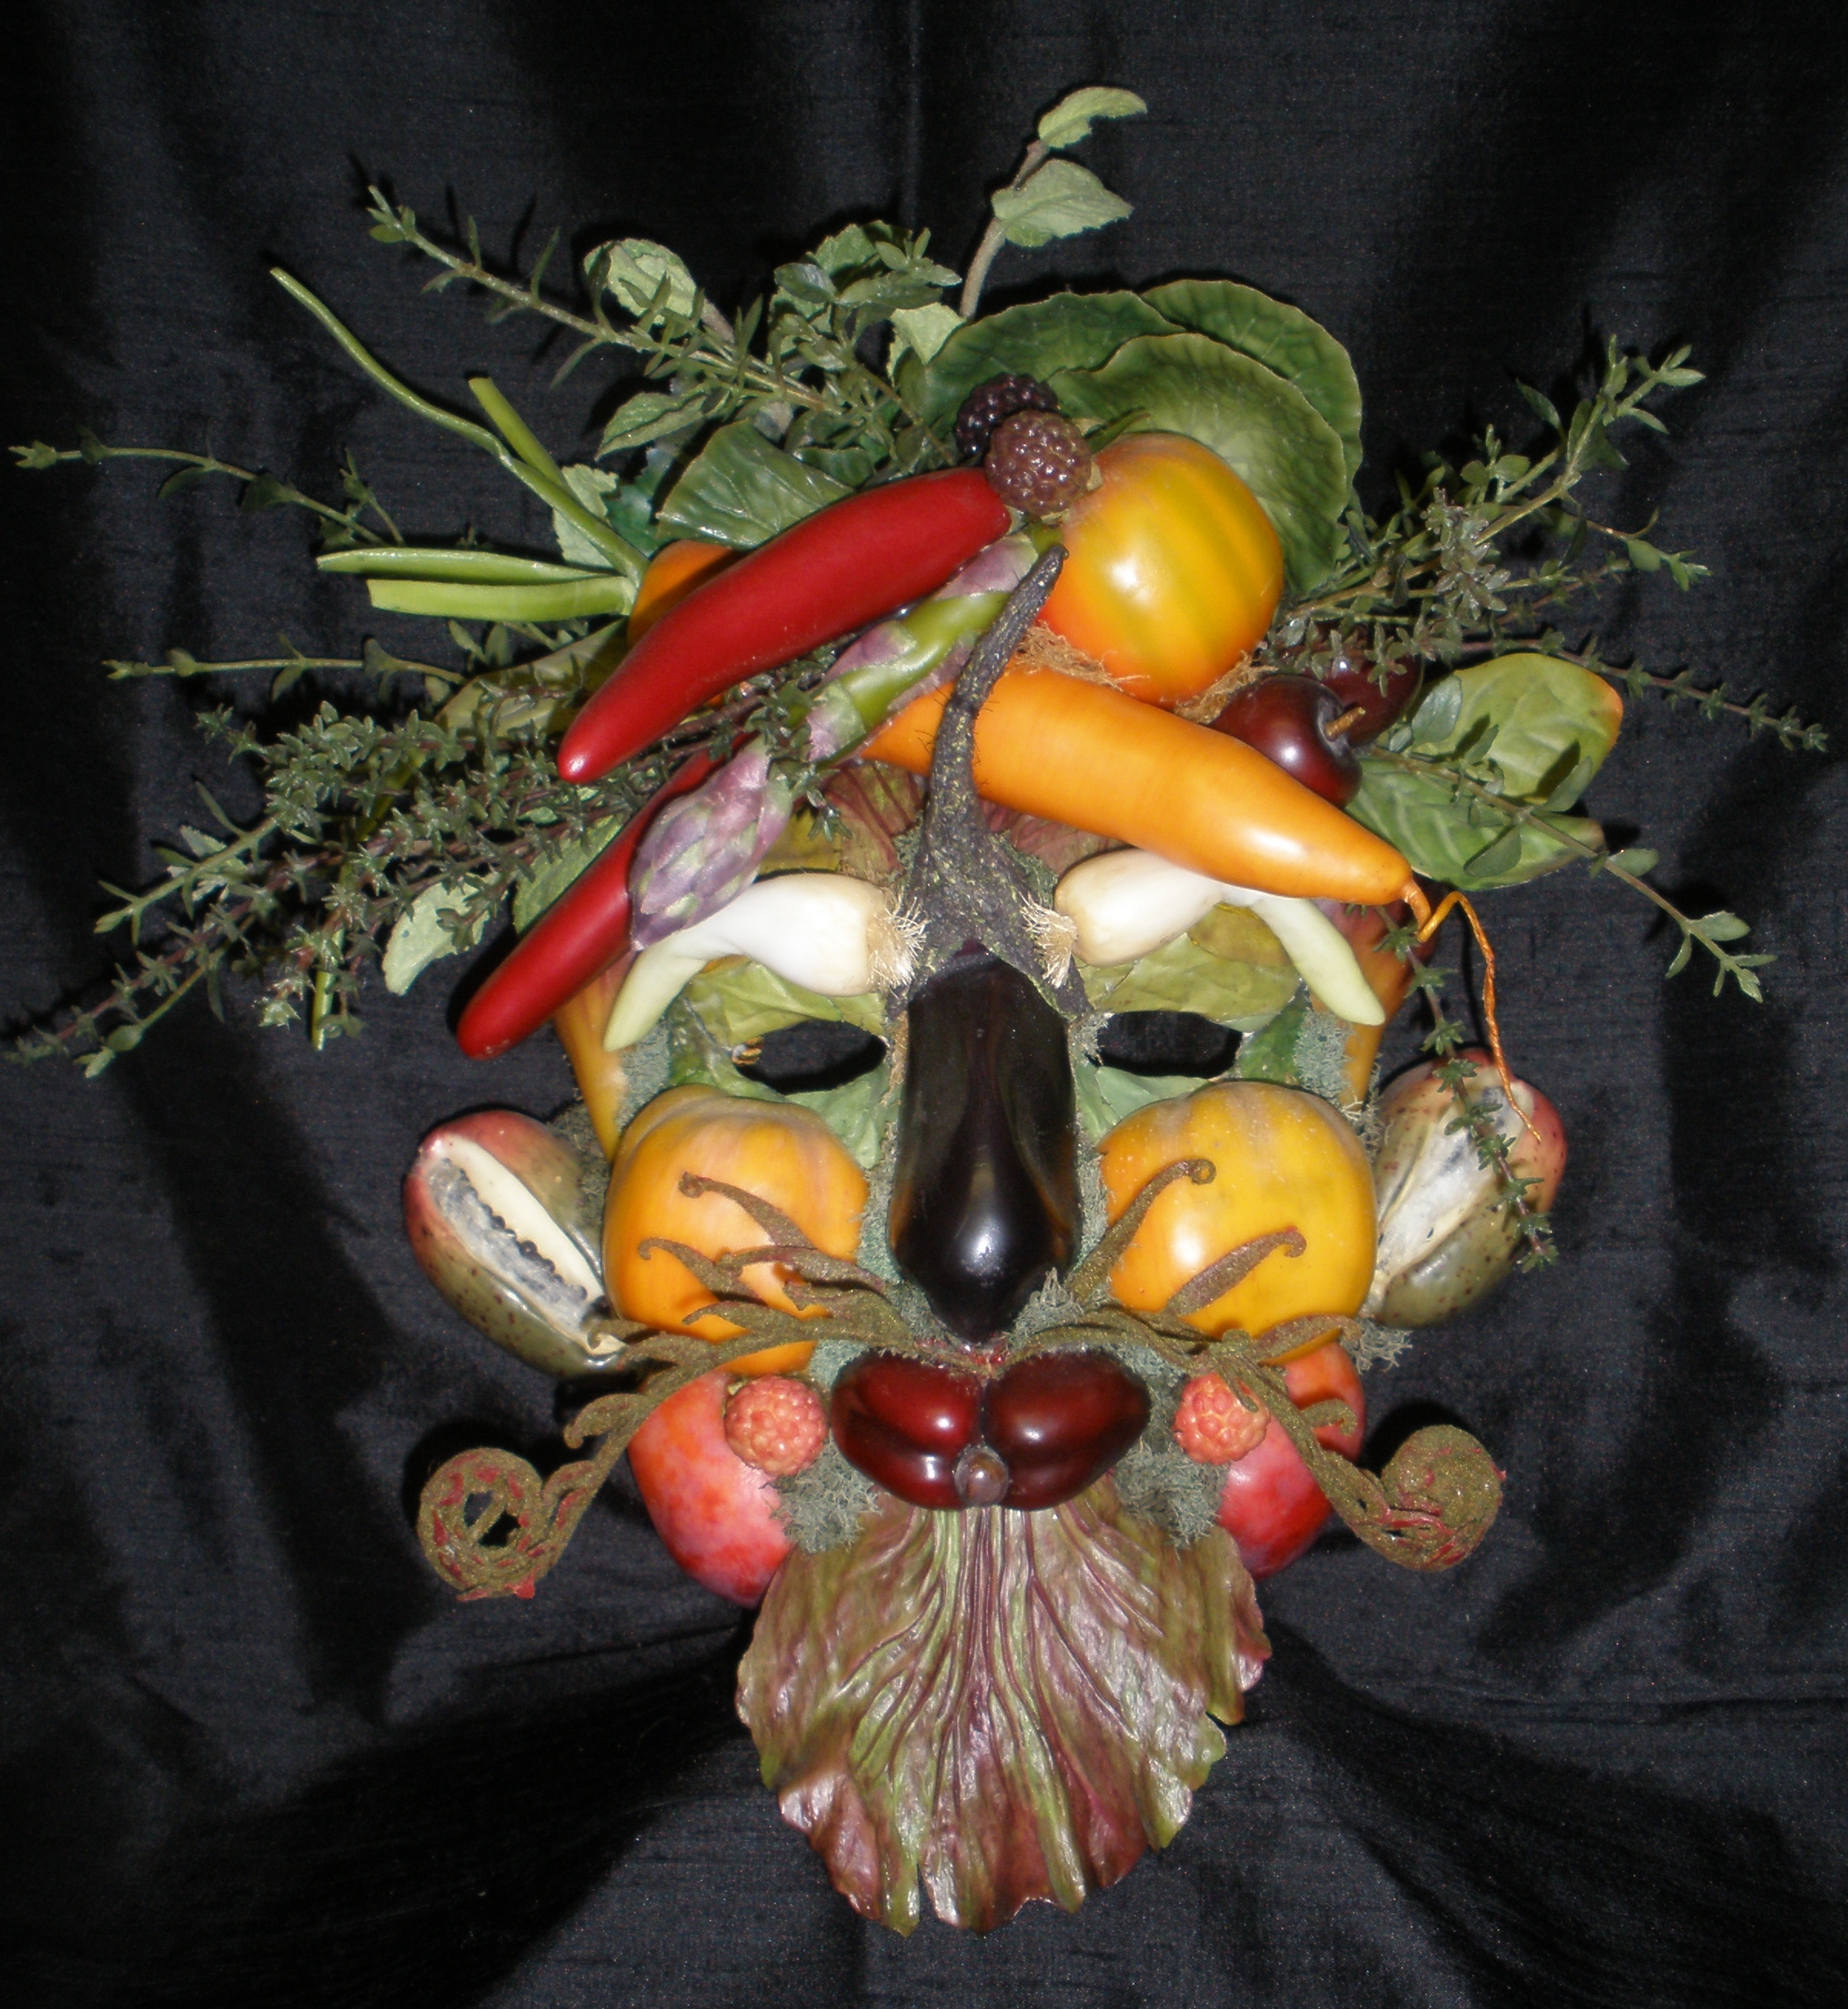 Inexpensive Kitchen Ideas Veggie Mask Inspired By Giuseppe Arcimboldo Figments